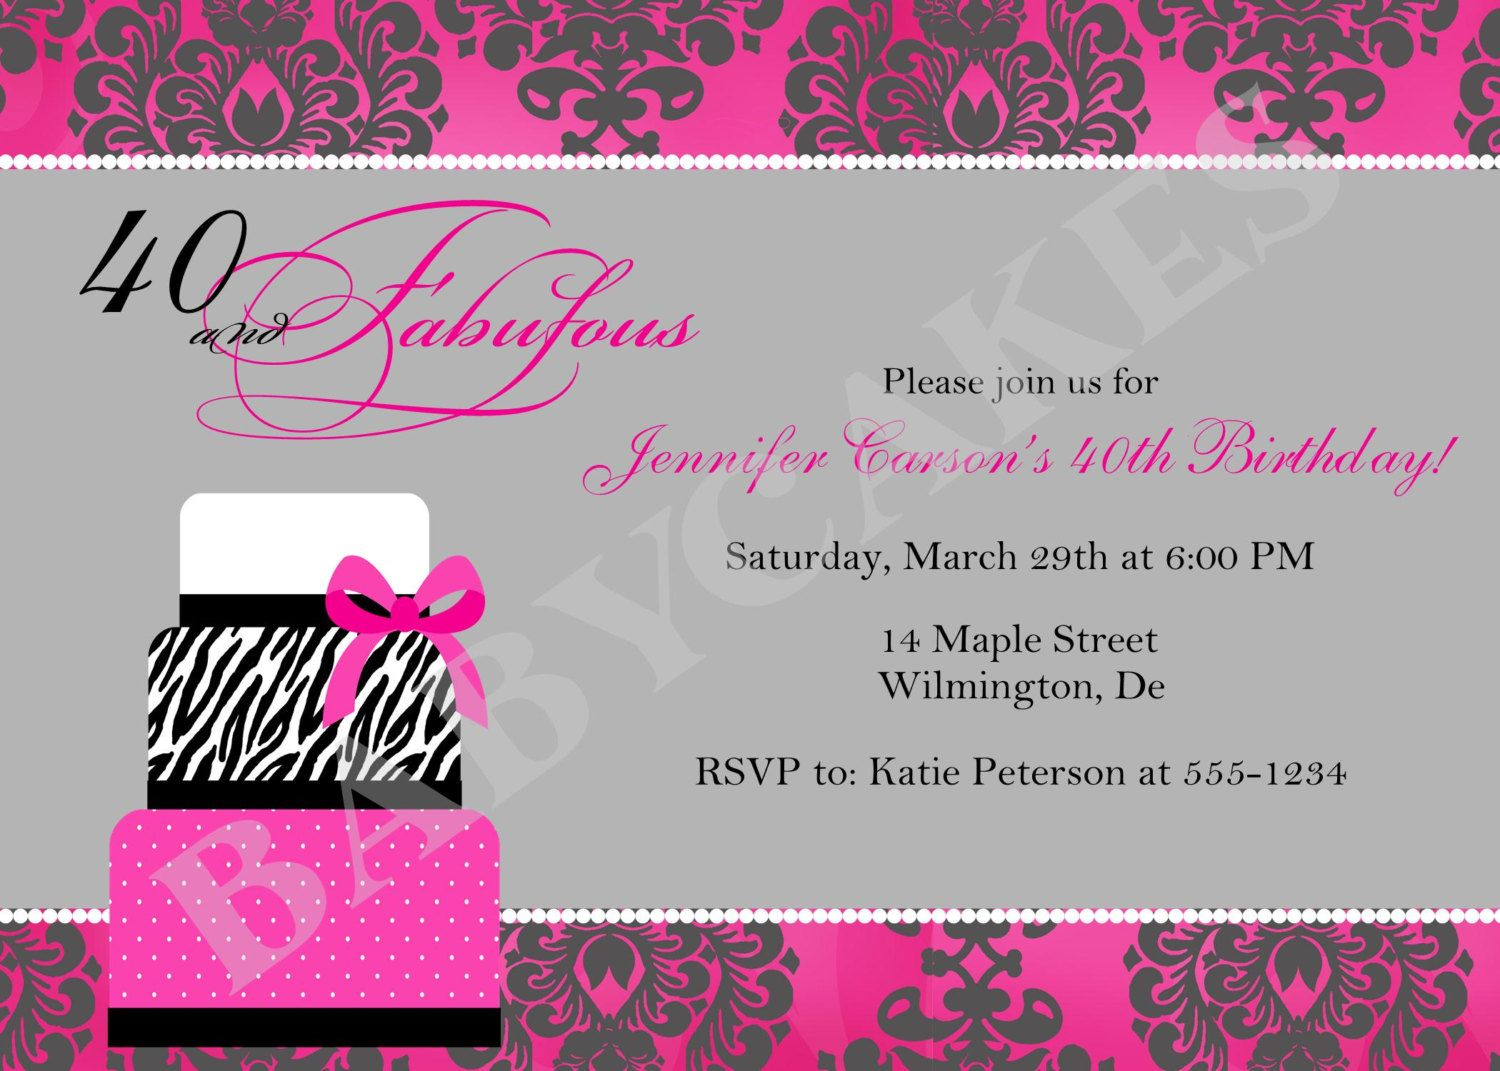 39th birthday party invitation wording ; 7c91618d8d8b9a01b8264569fa79c0fa